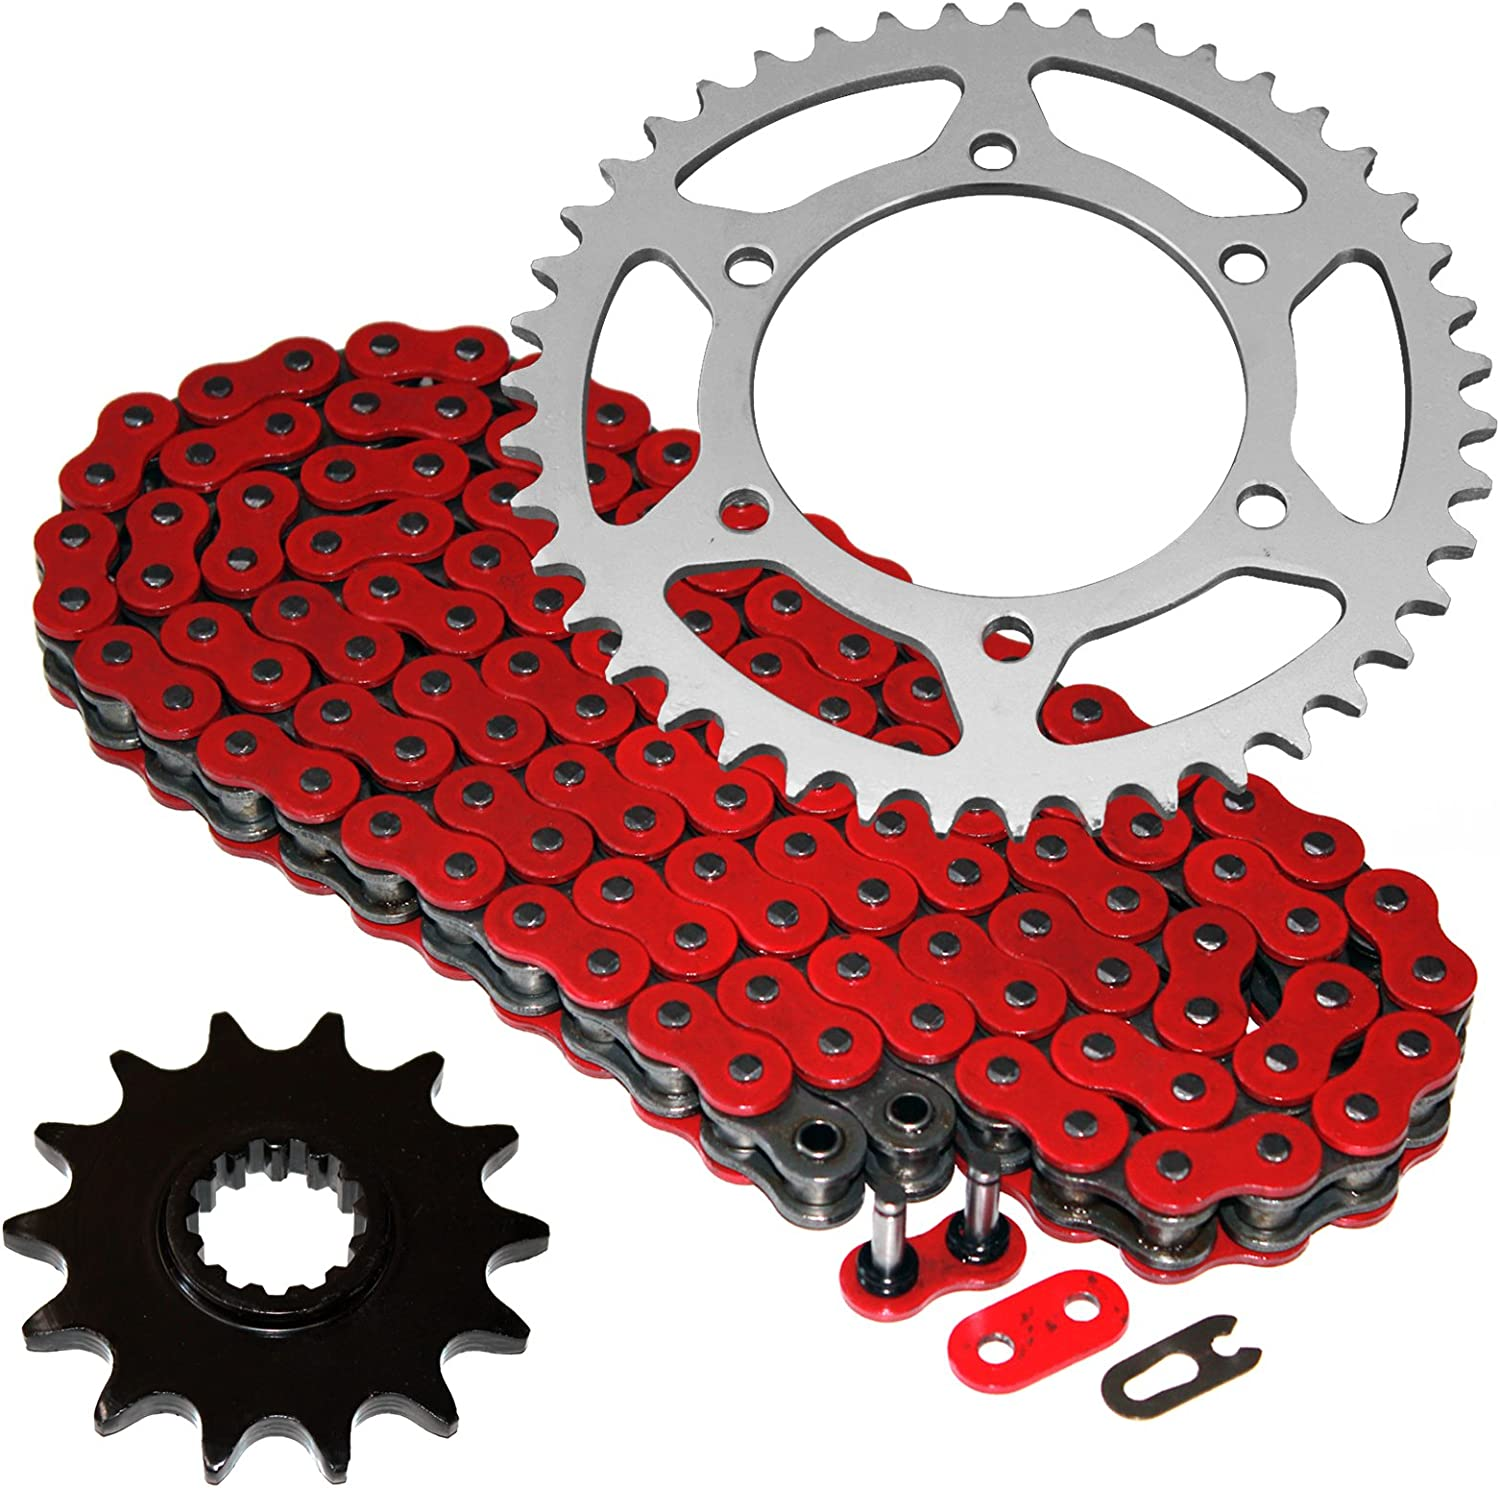 Caltric Red O-Ring Drive Chain & Sprockets for Kawasaki Ex250J Ex-250J Ninja 250R 2008-2012